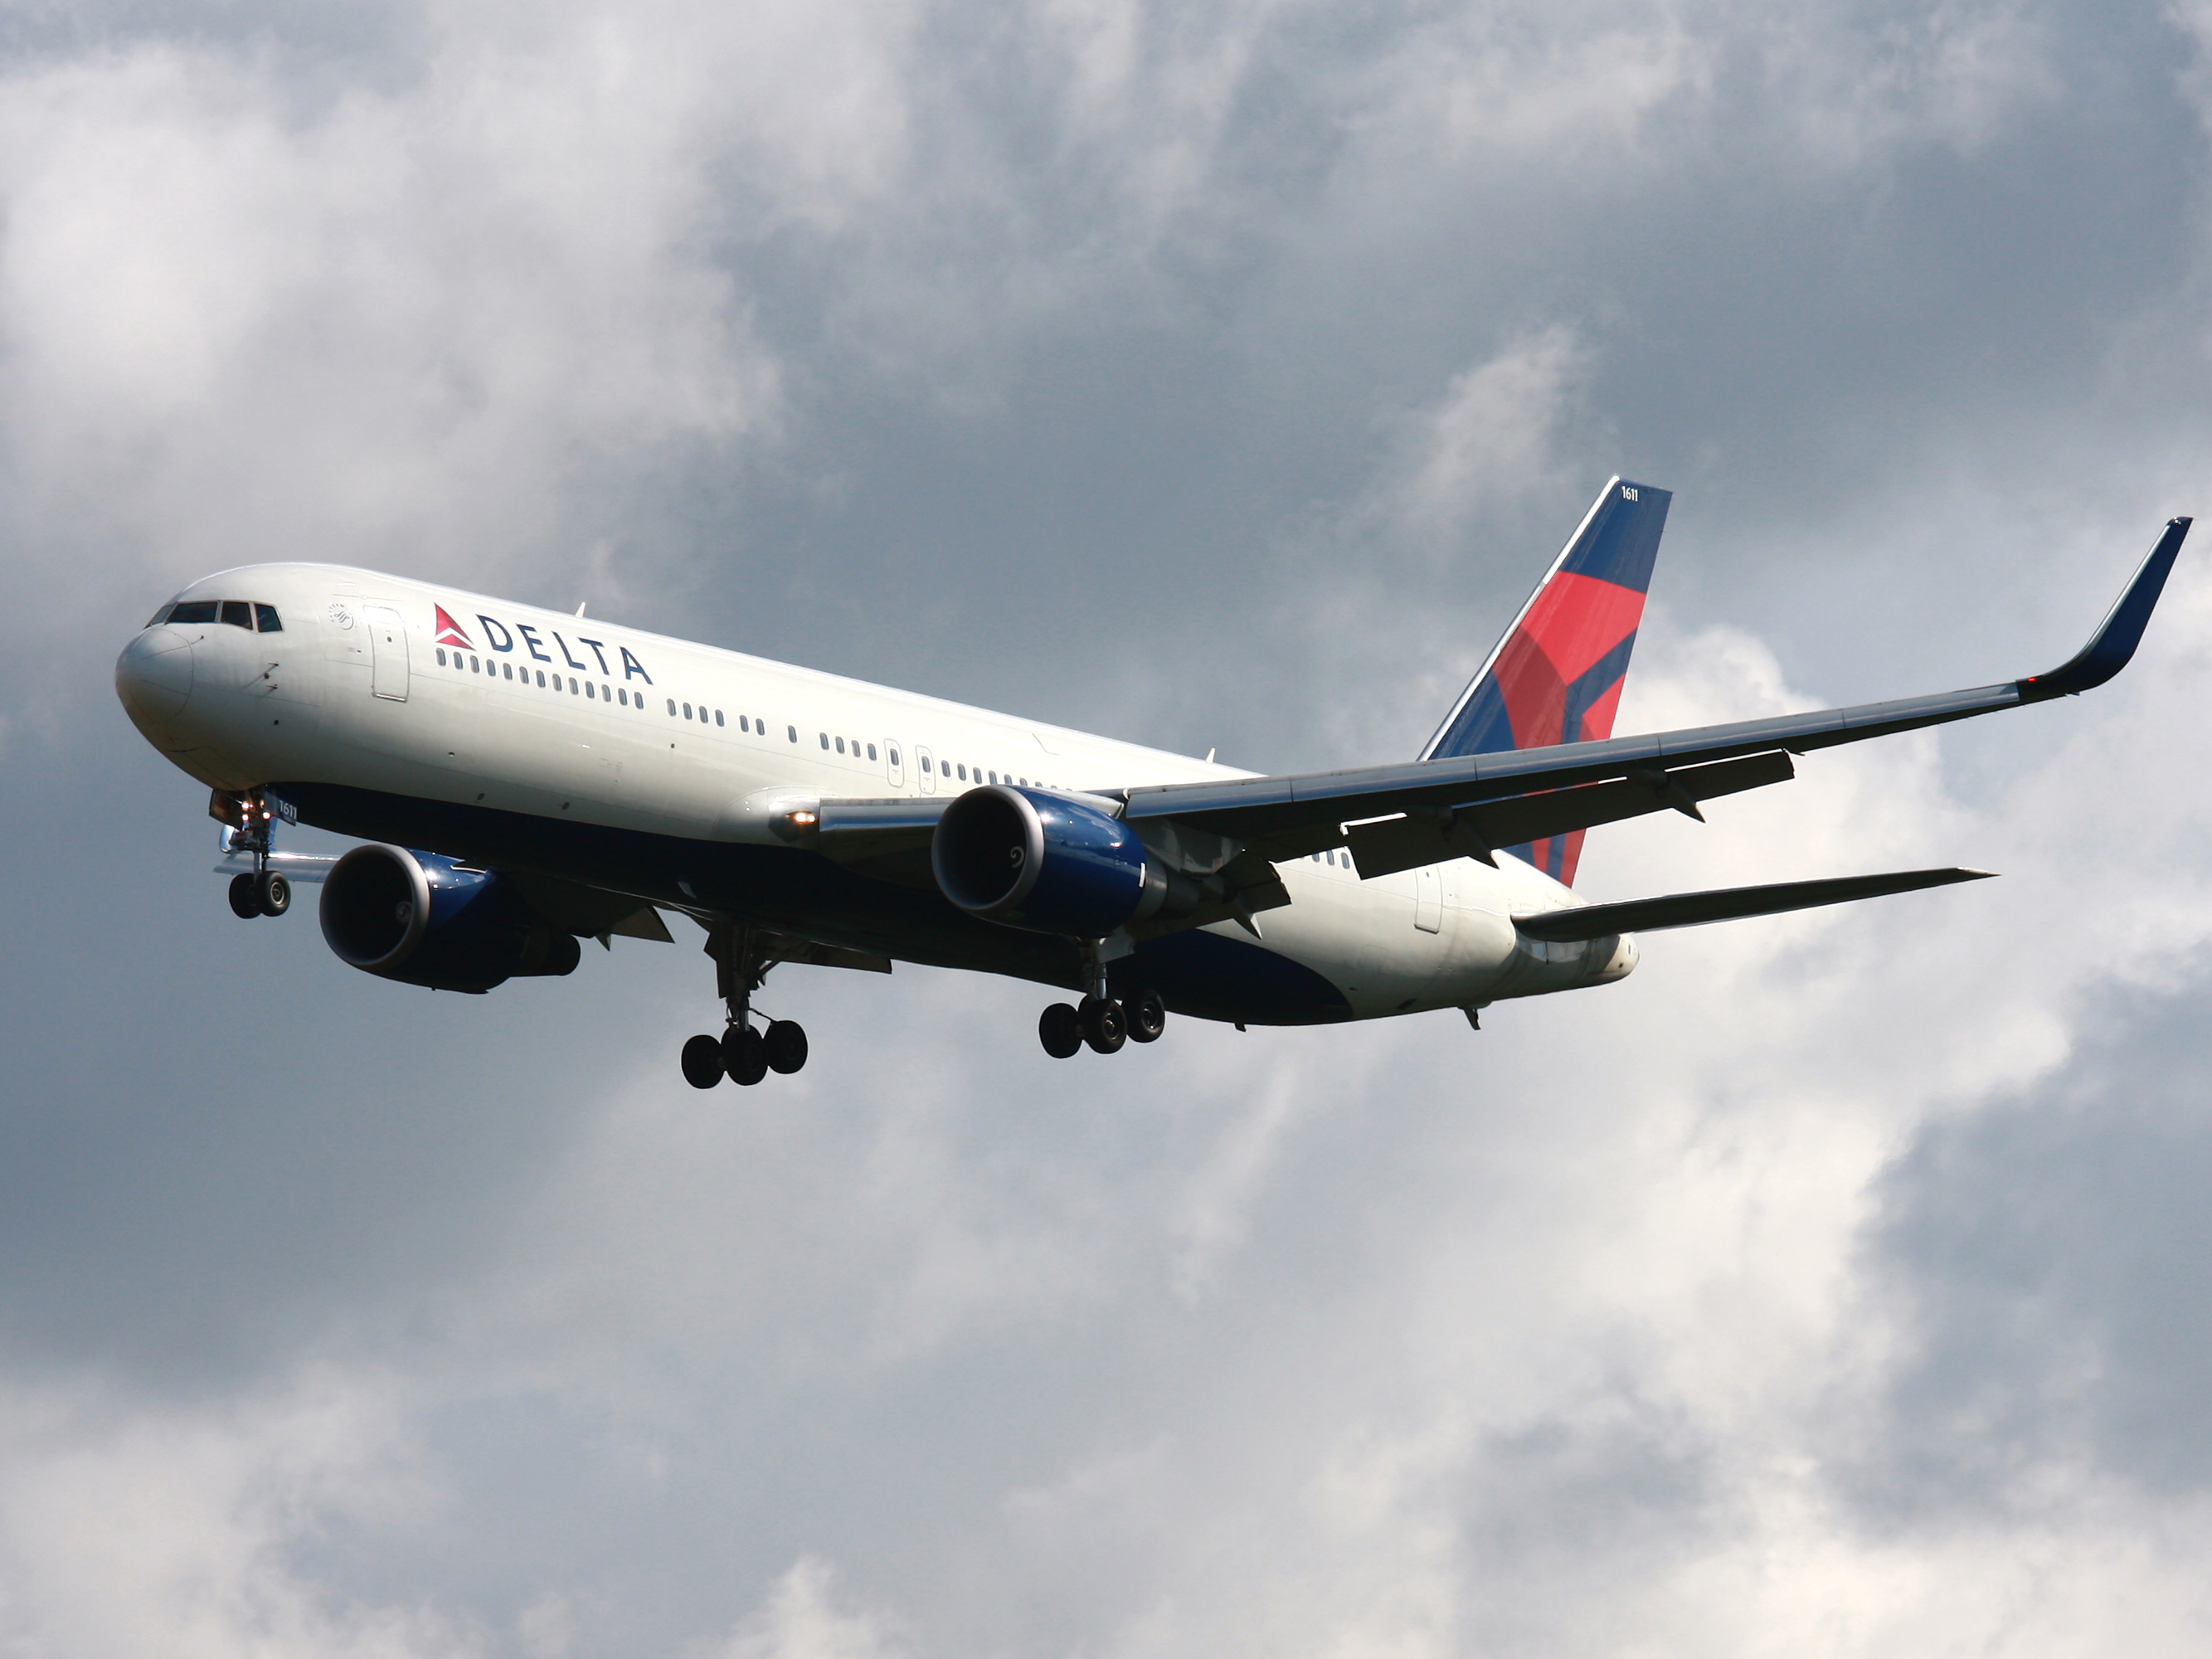 Delta nearly joined its rivals in buying the troubled Boeing